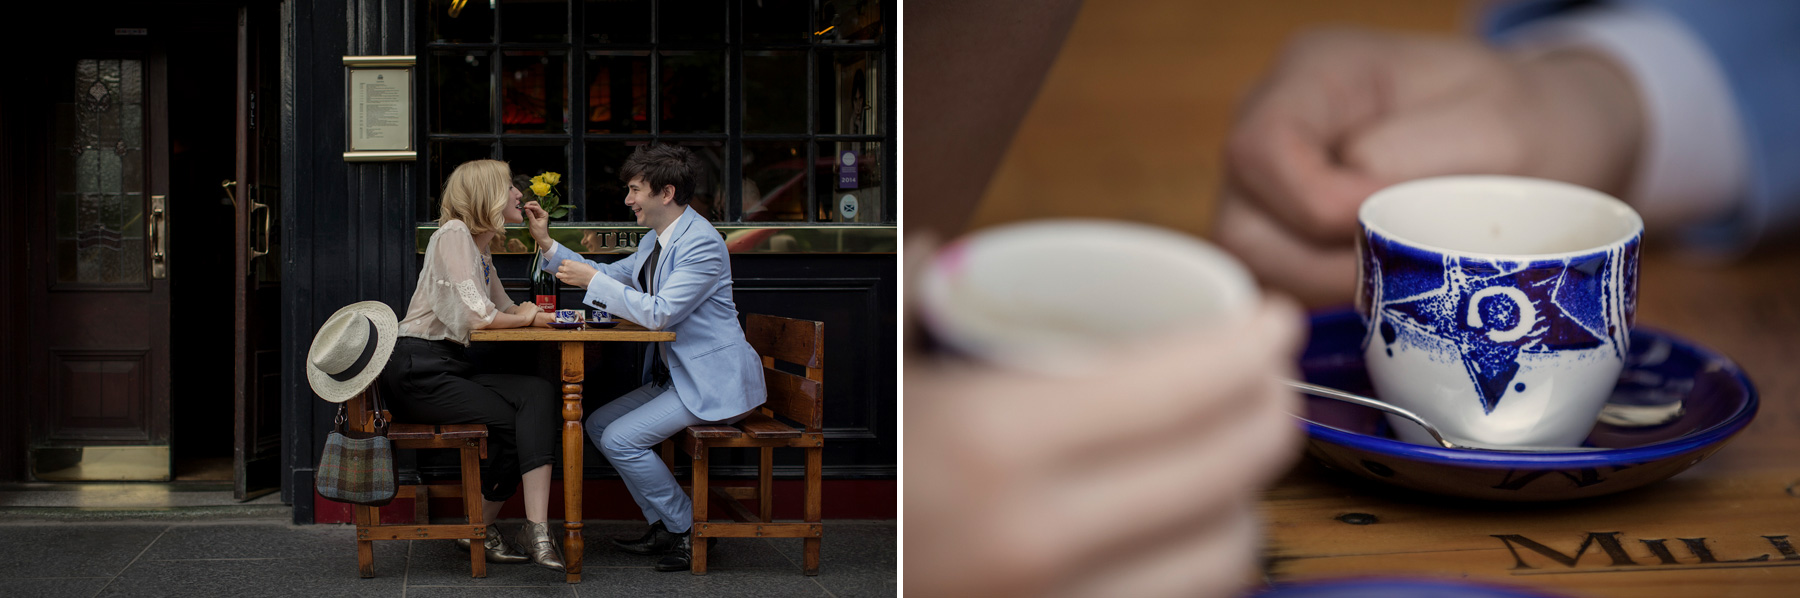 Jenni Melear & Stuart McLeod - shoot in Edinburgh © Paul Raeburn - wedding photographer Scotland